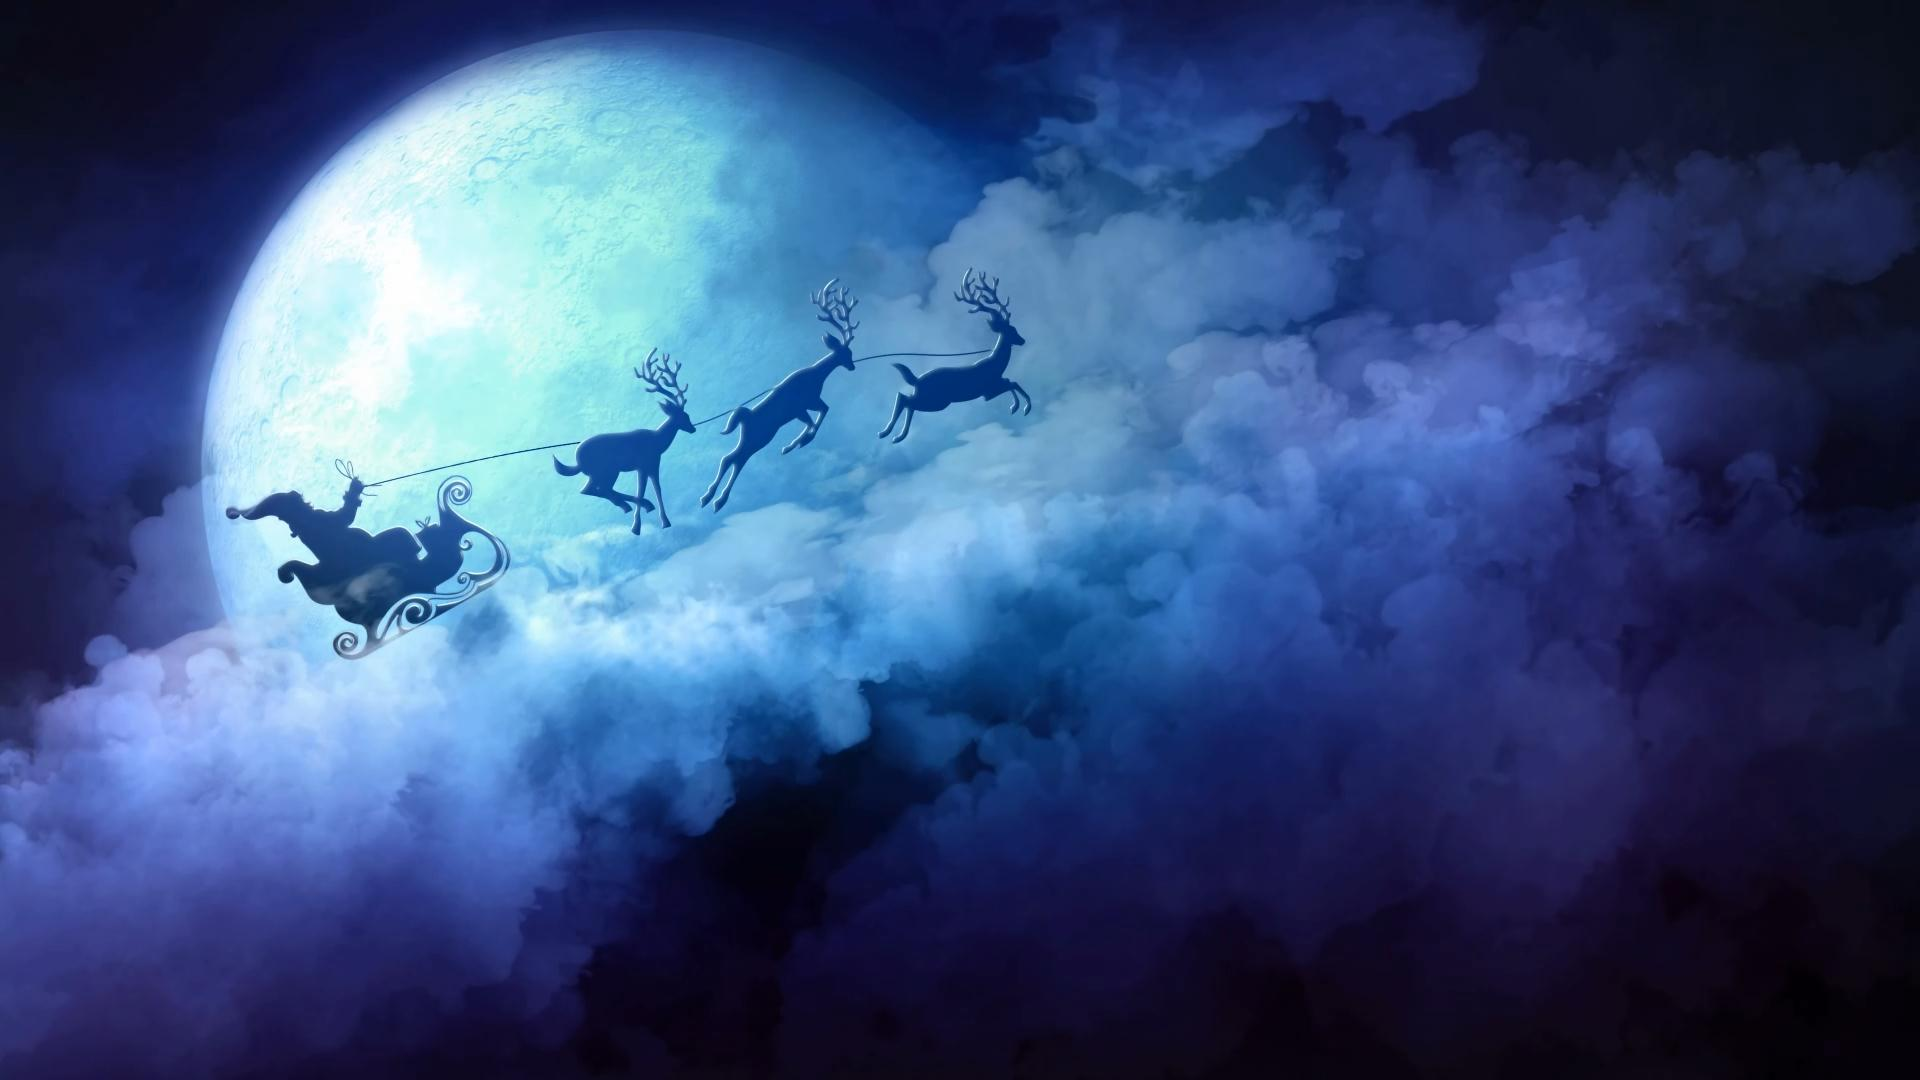 5 Best Holiday Animated Wallpapers for your Desktop » Forum Post by Island Dog